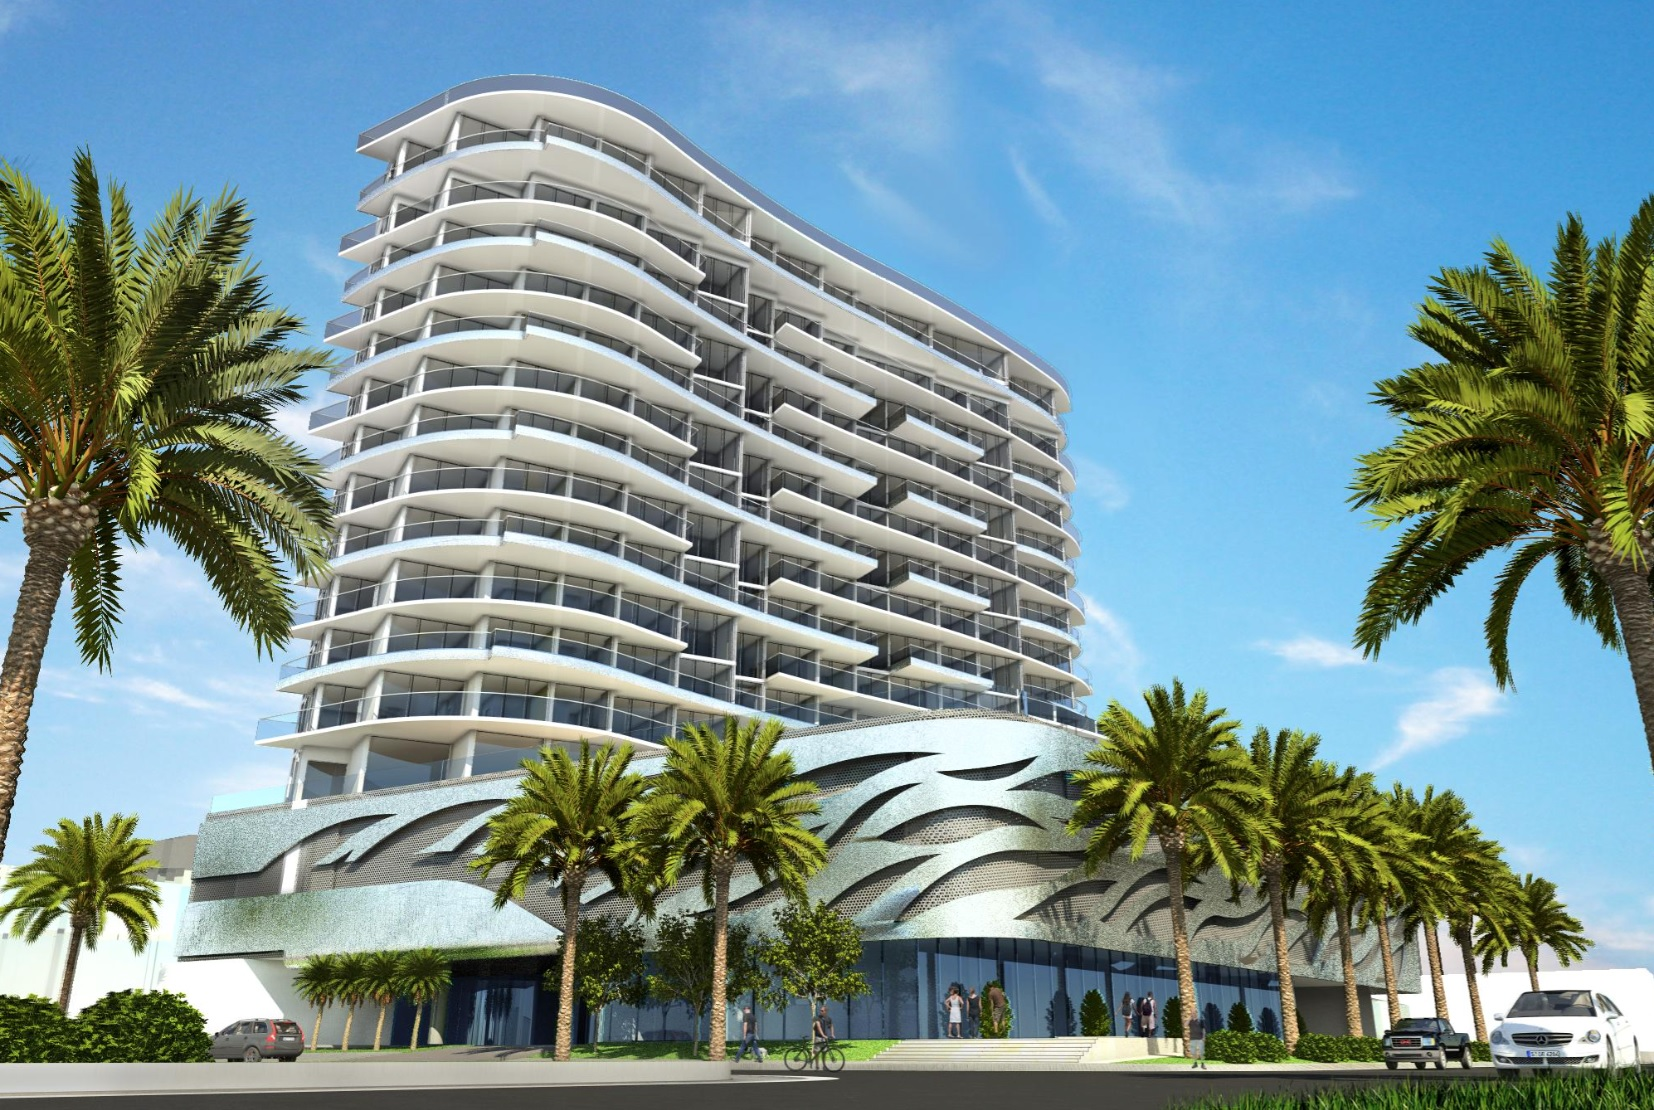 Artist rendering of redesigned Verzasca condominium proposed at 17550 Collins Avenue in Sunny Isles Beach.